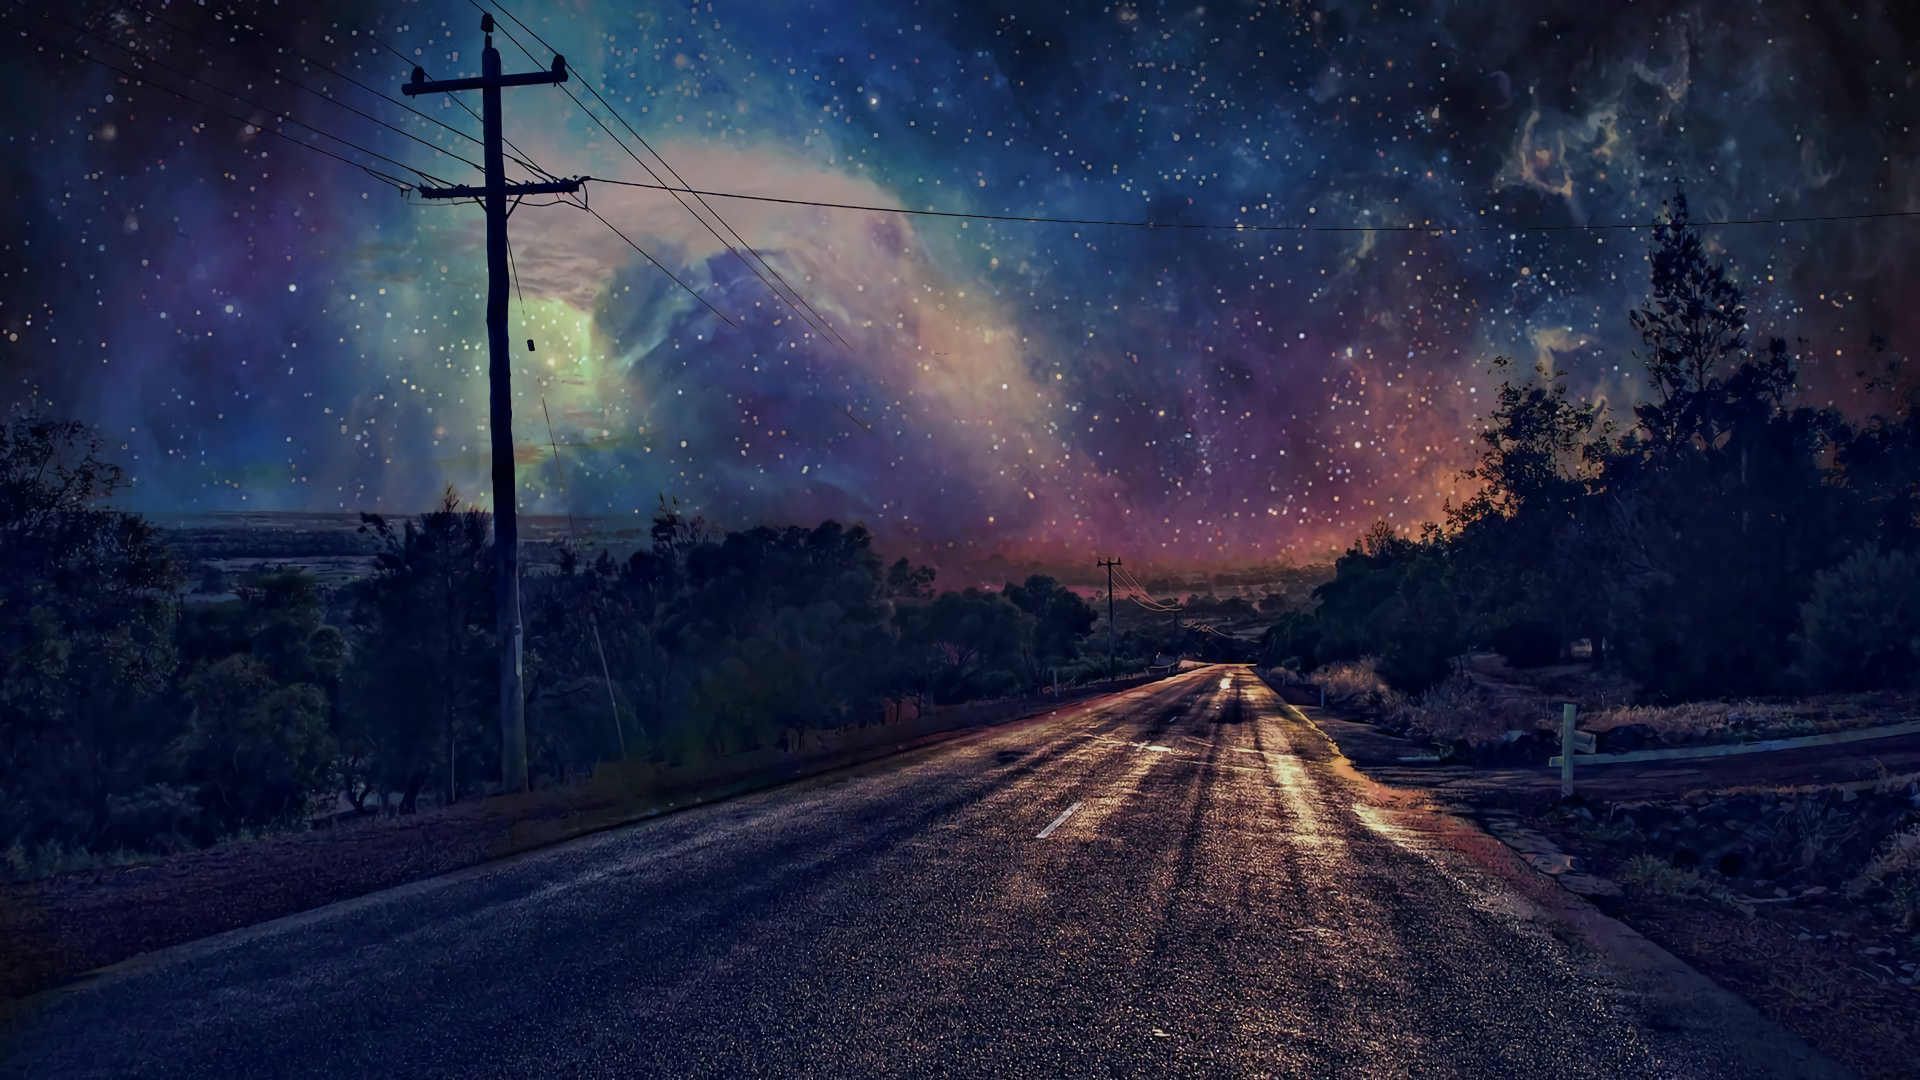 243 Starry Sky HD Wallpapers | Backgrounds - Wallpaper Abyss